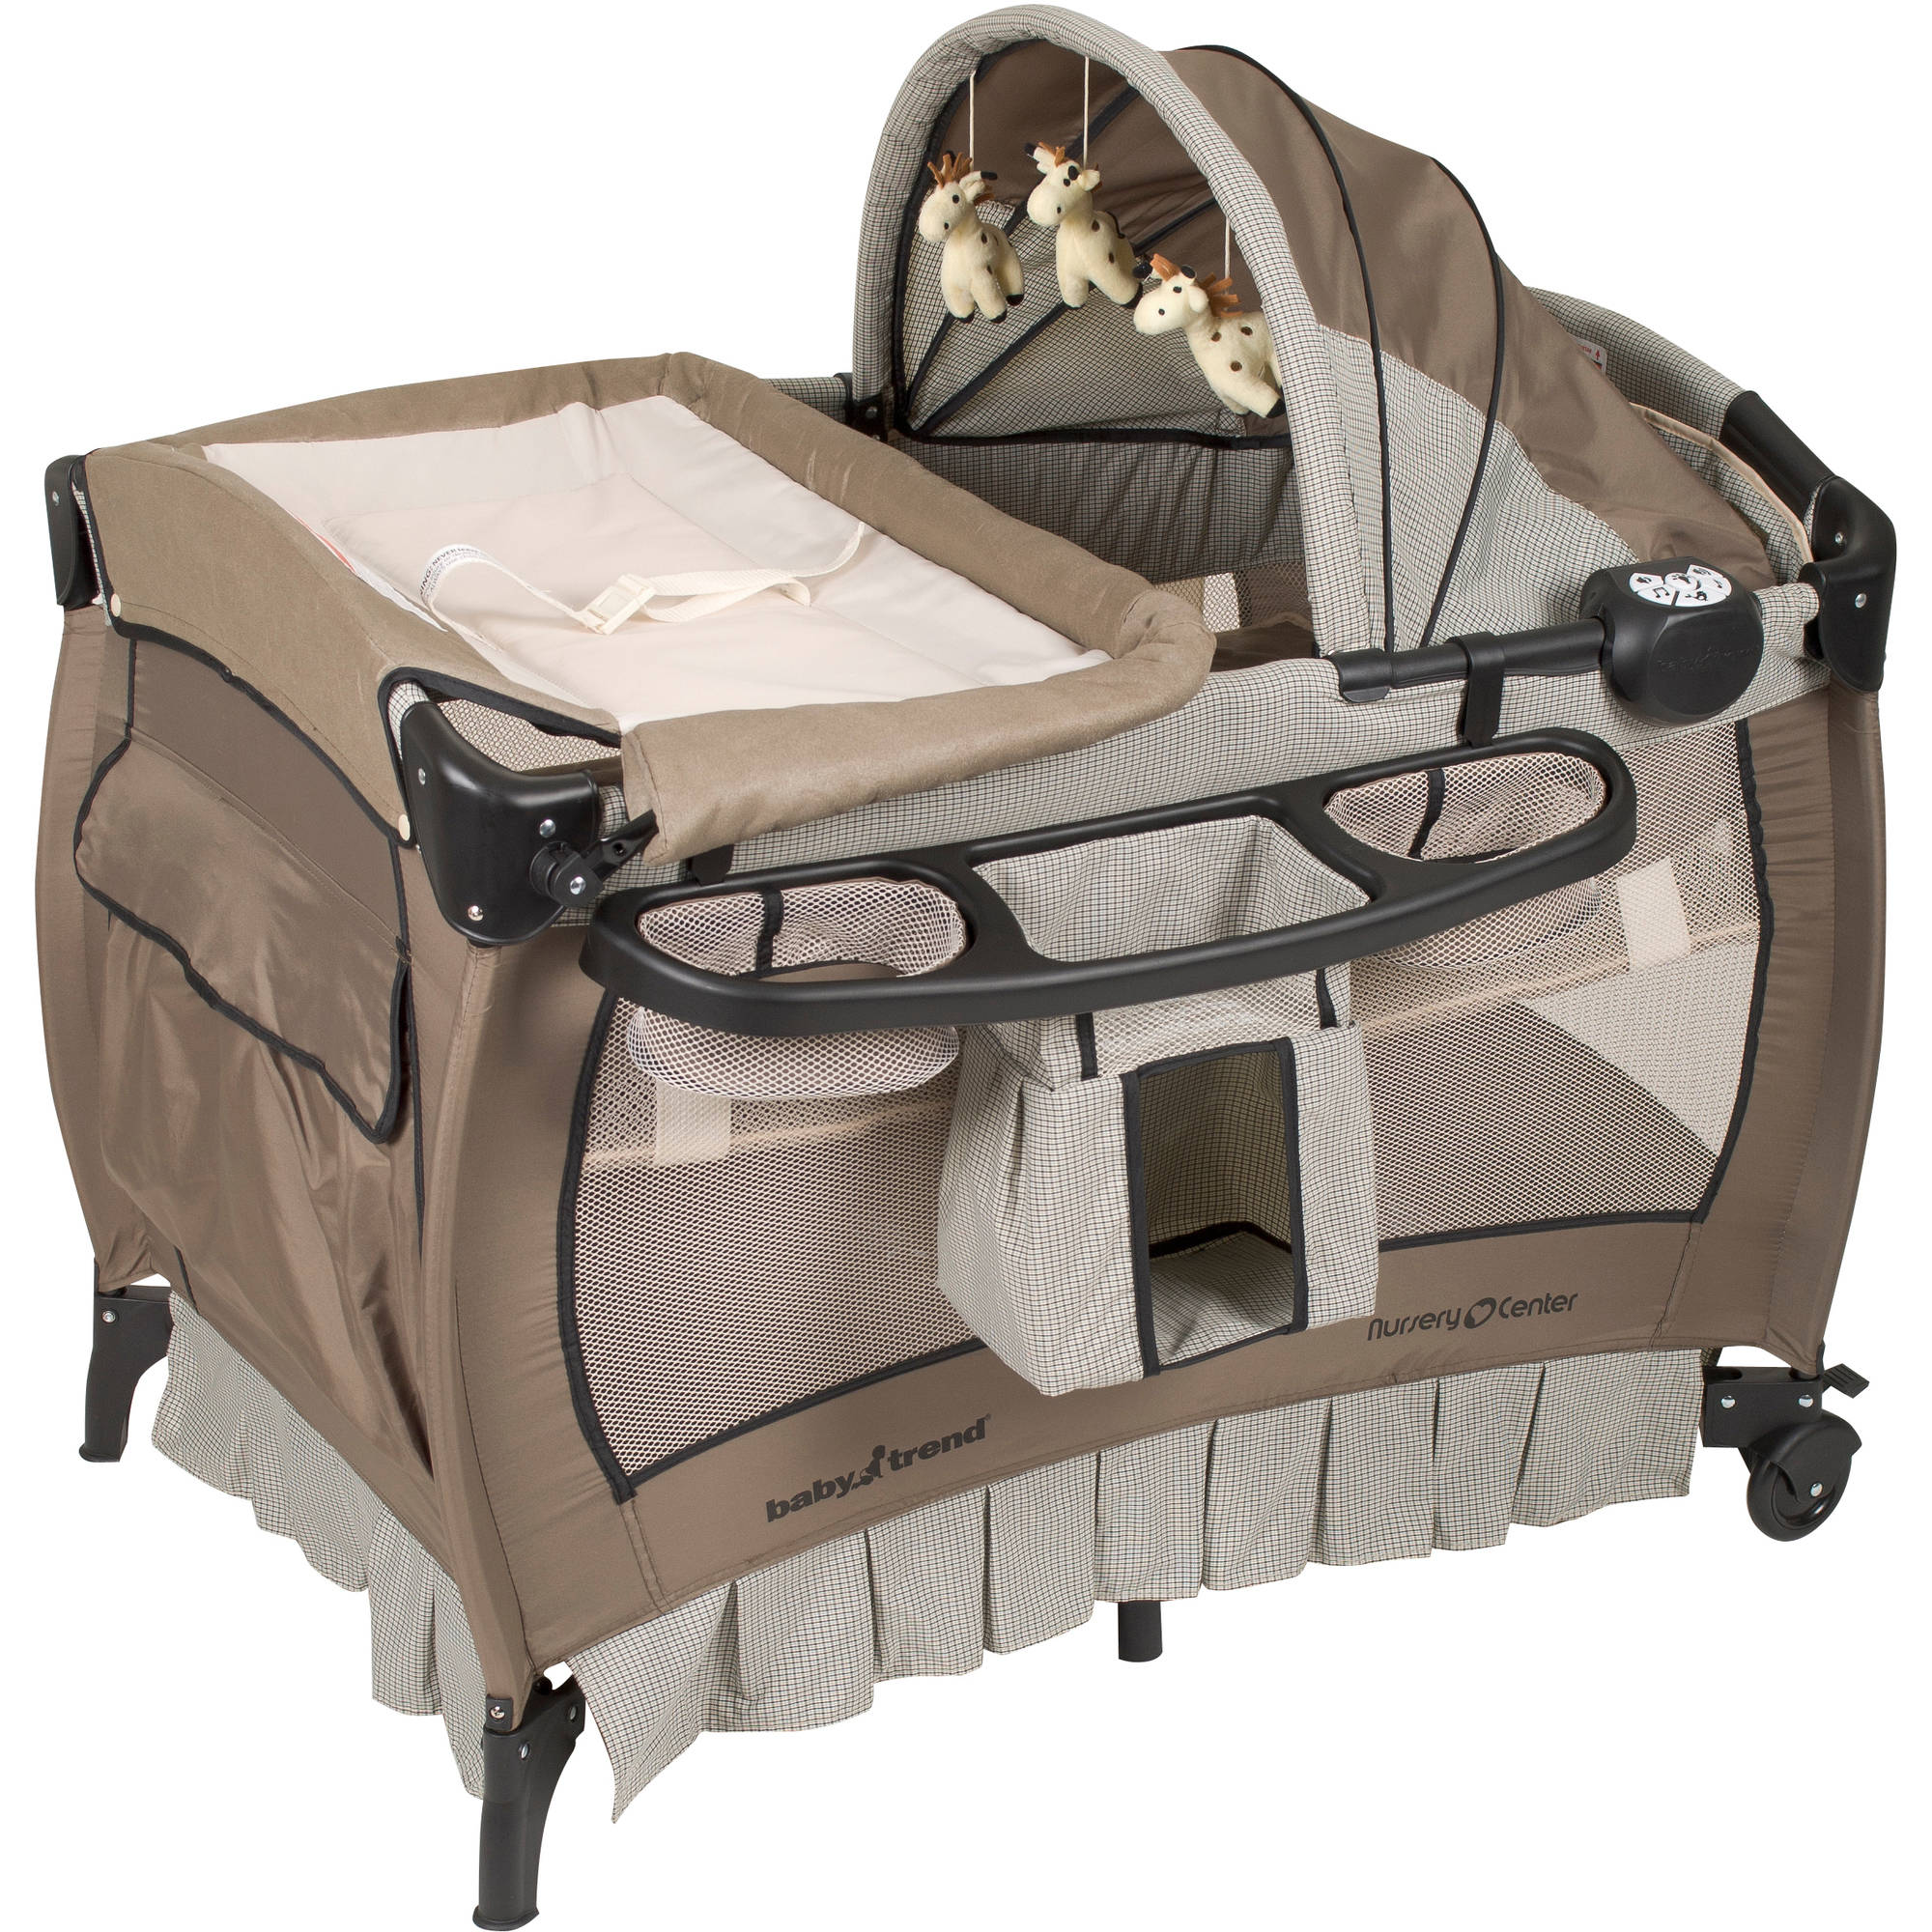 Baby Trend Deluxe Nursery Center Play Pen, Havenwood by Baby Trend